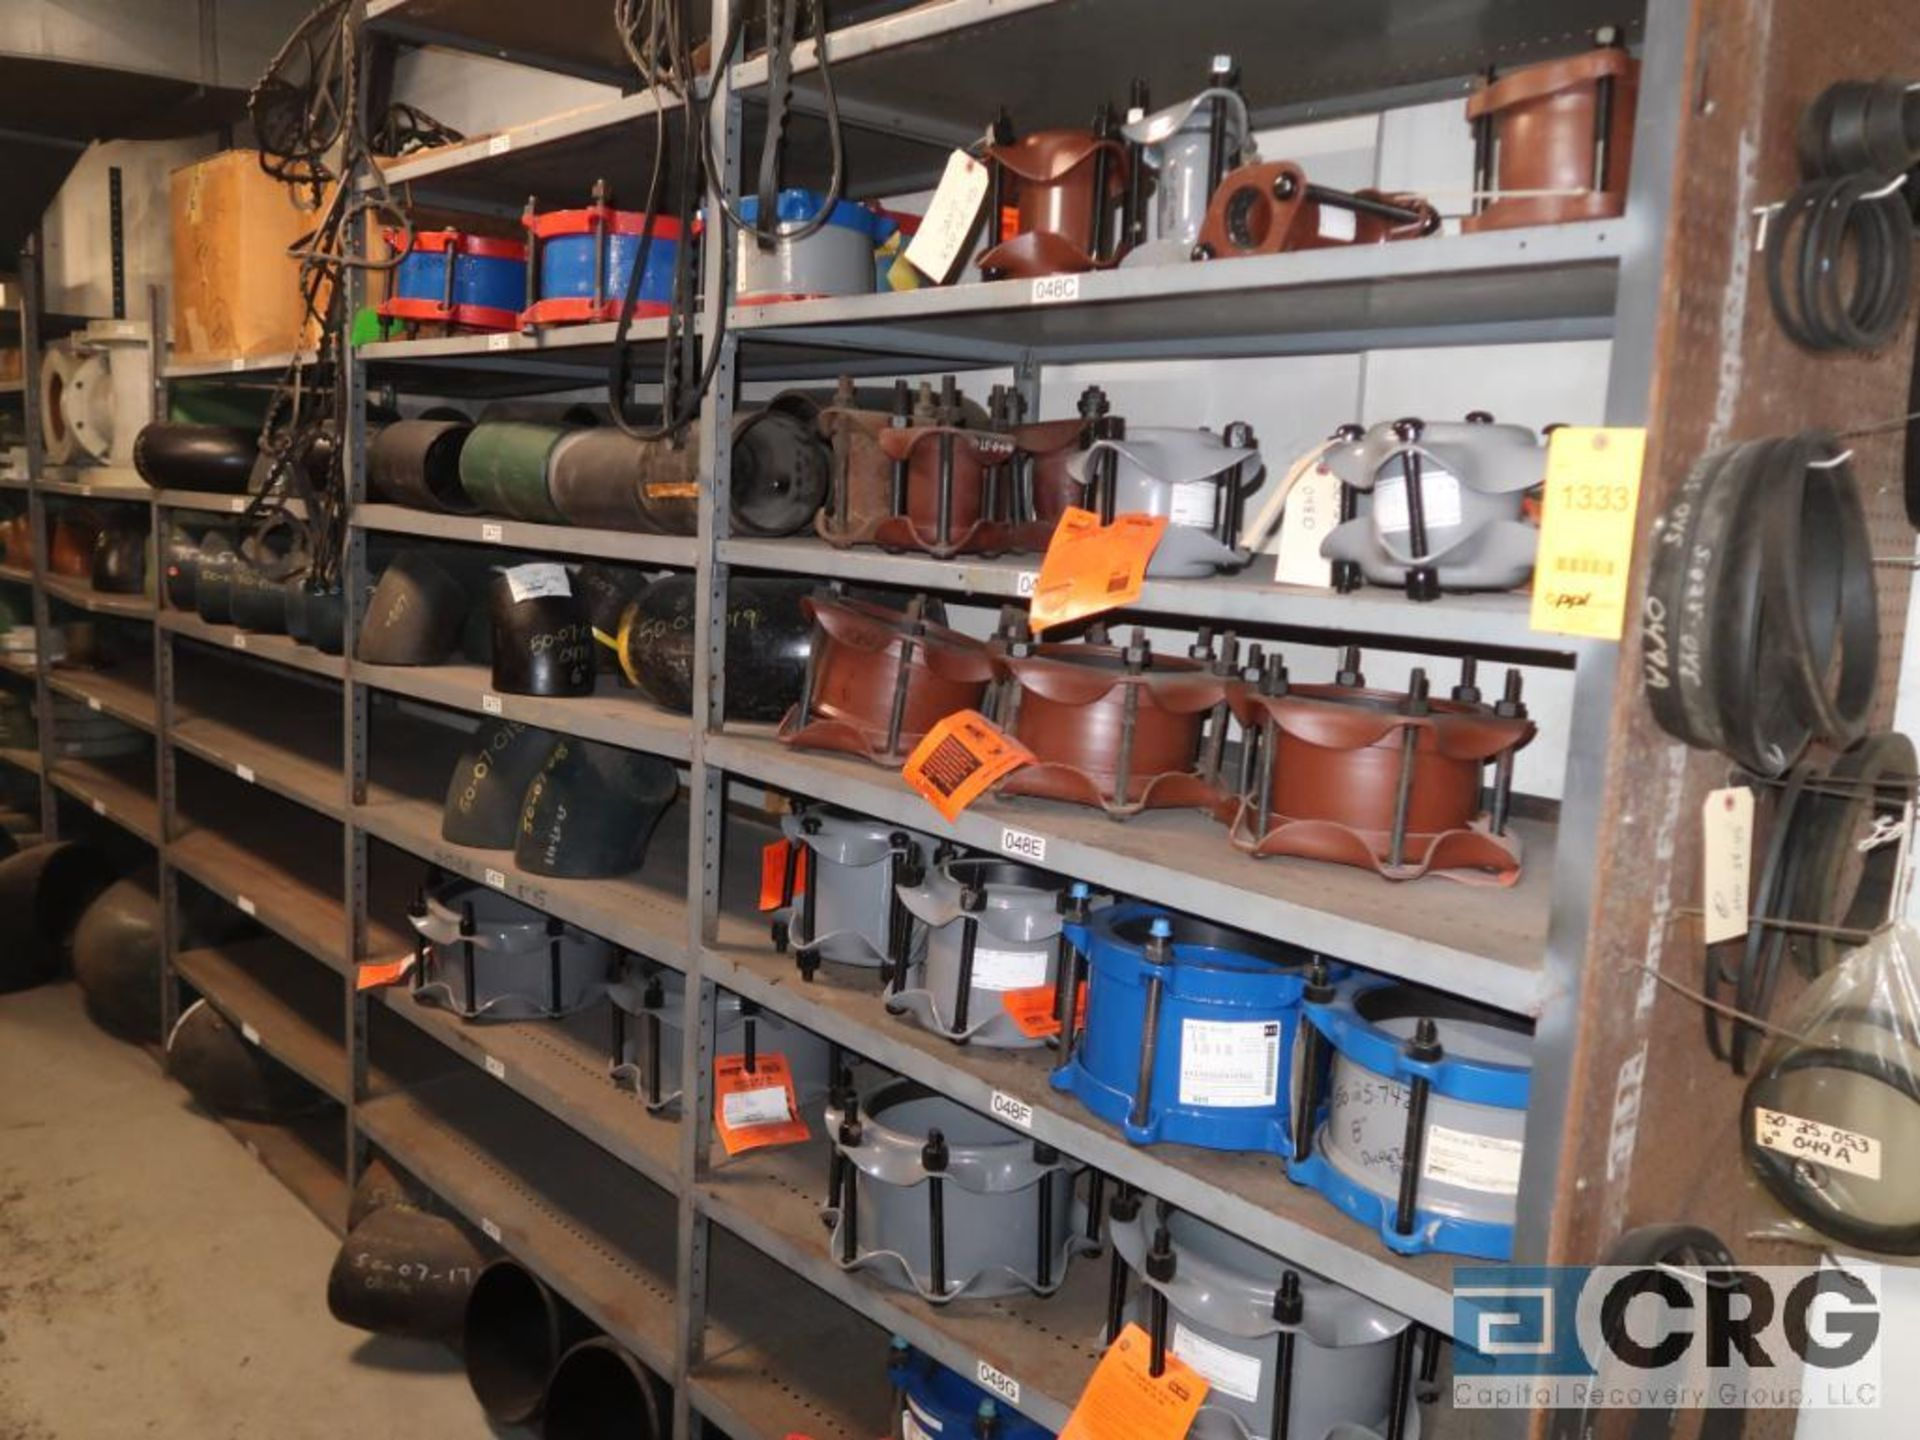 Lot of (15) sections with assorted parts including fiberglass pipes, fittings, steel fittings, tee'